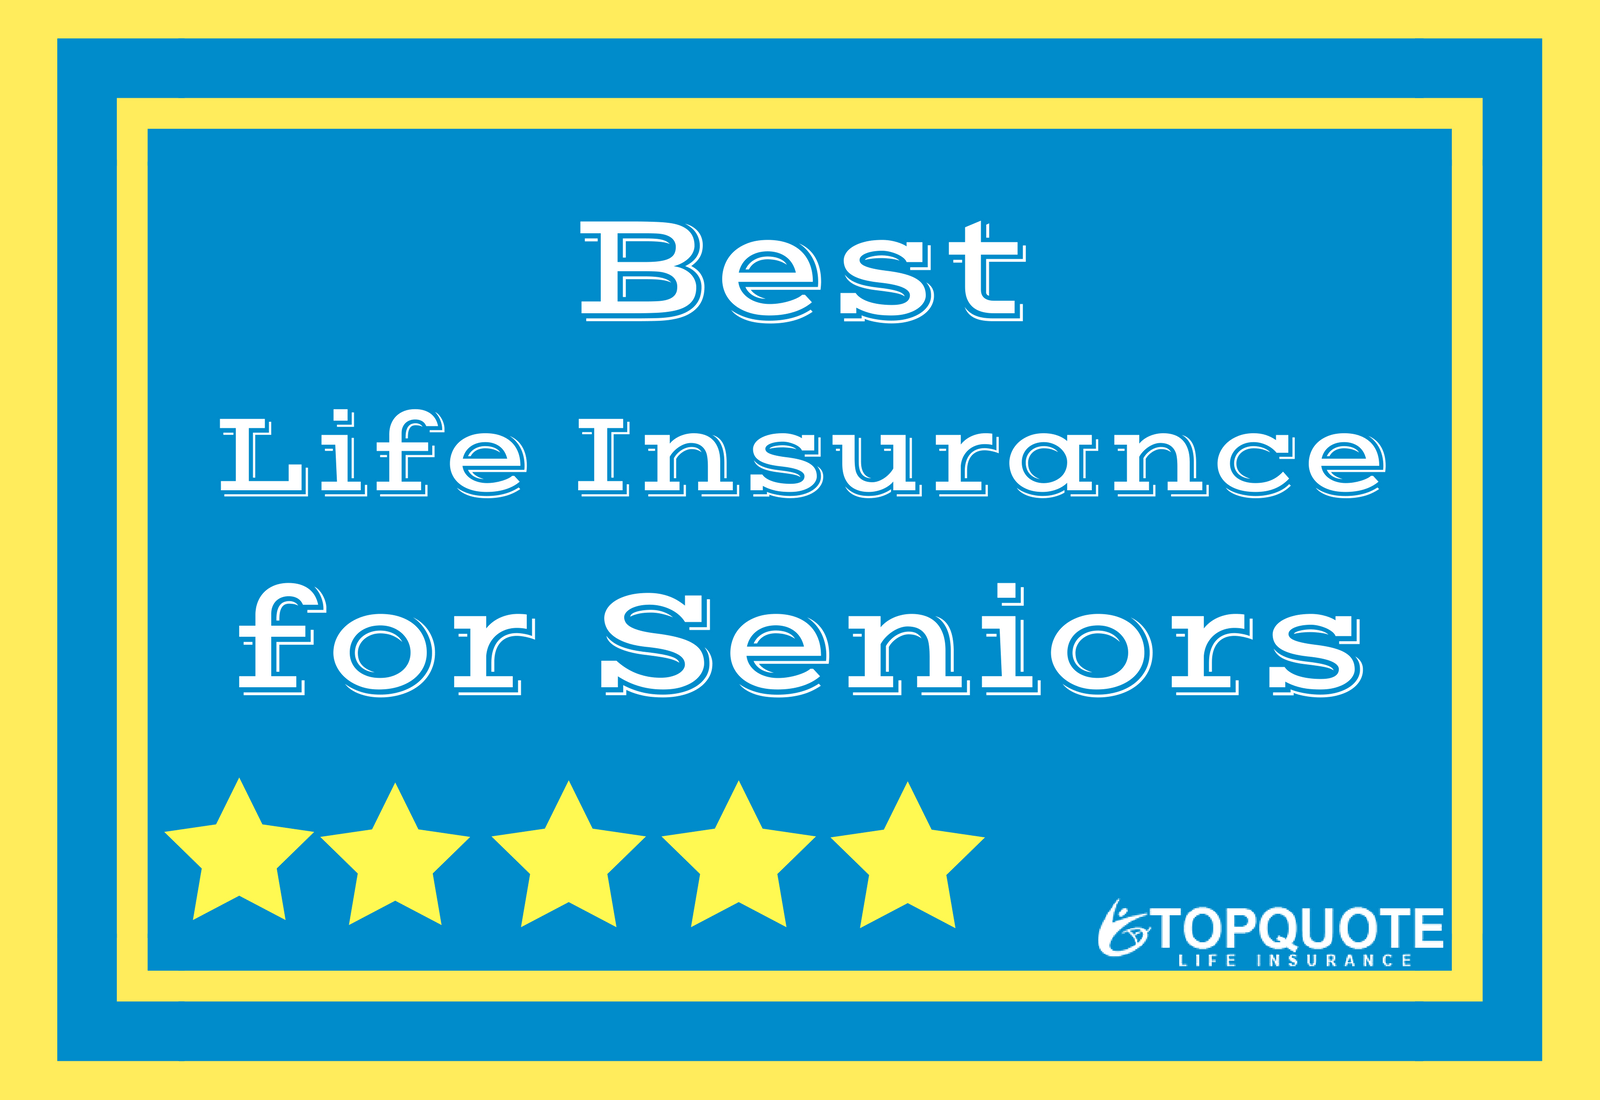 Aarp Life Insurance Quotes Best Life Insurance For Seniors  Top 10 Senior Life Insurance